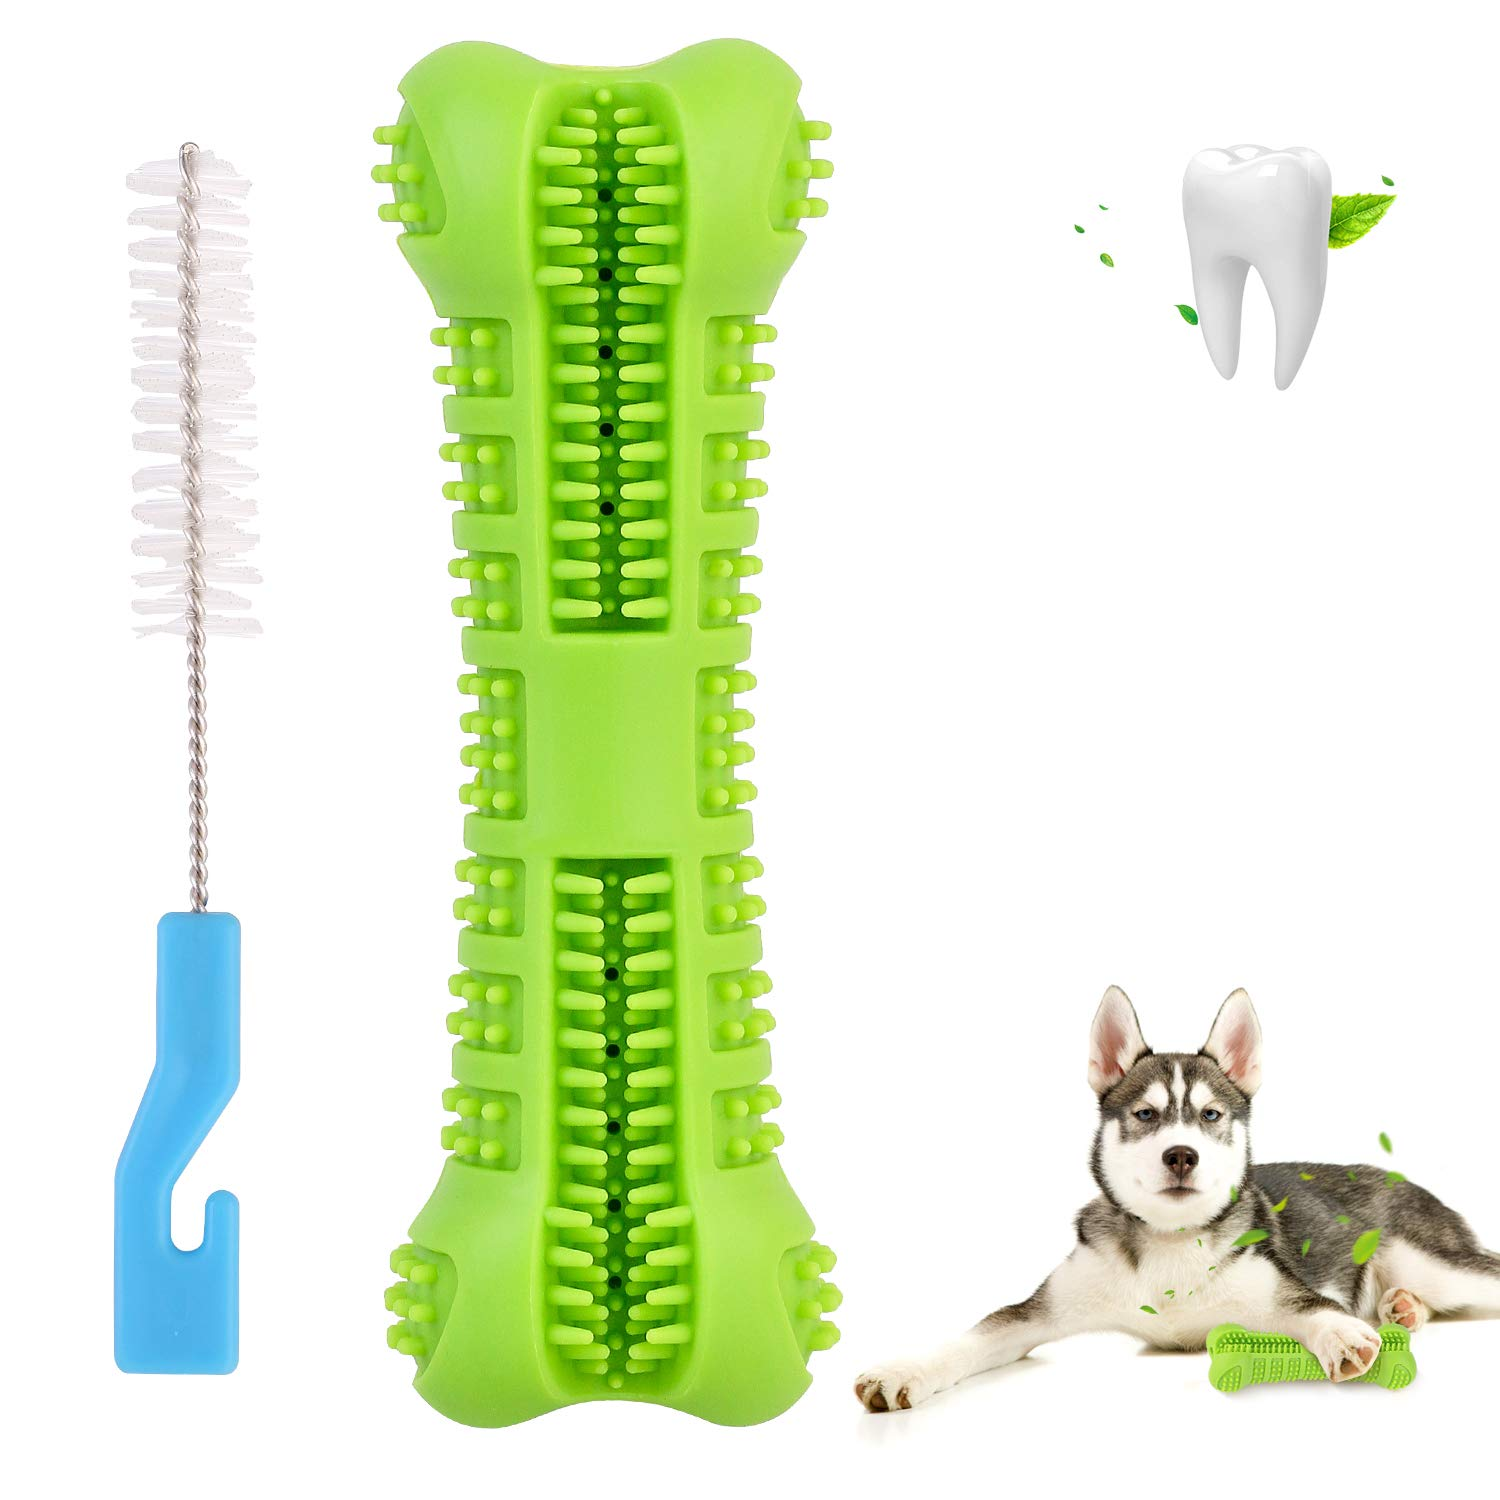 DIDIPET Dog Toothbrush Chew Toy Teeth Cleaning Stick for Puppy Dental Care Doggy 0-45lbs Massager Natural Rubber Bite Resistant by DIDIPET